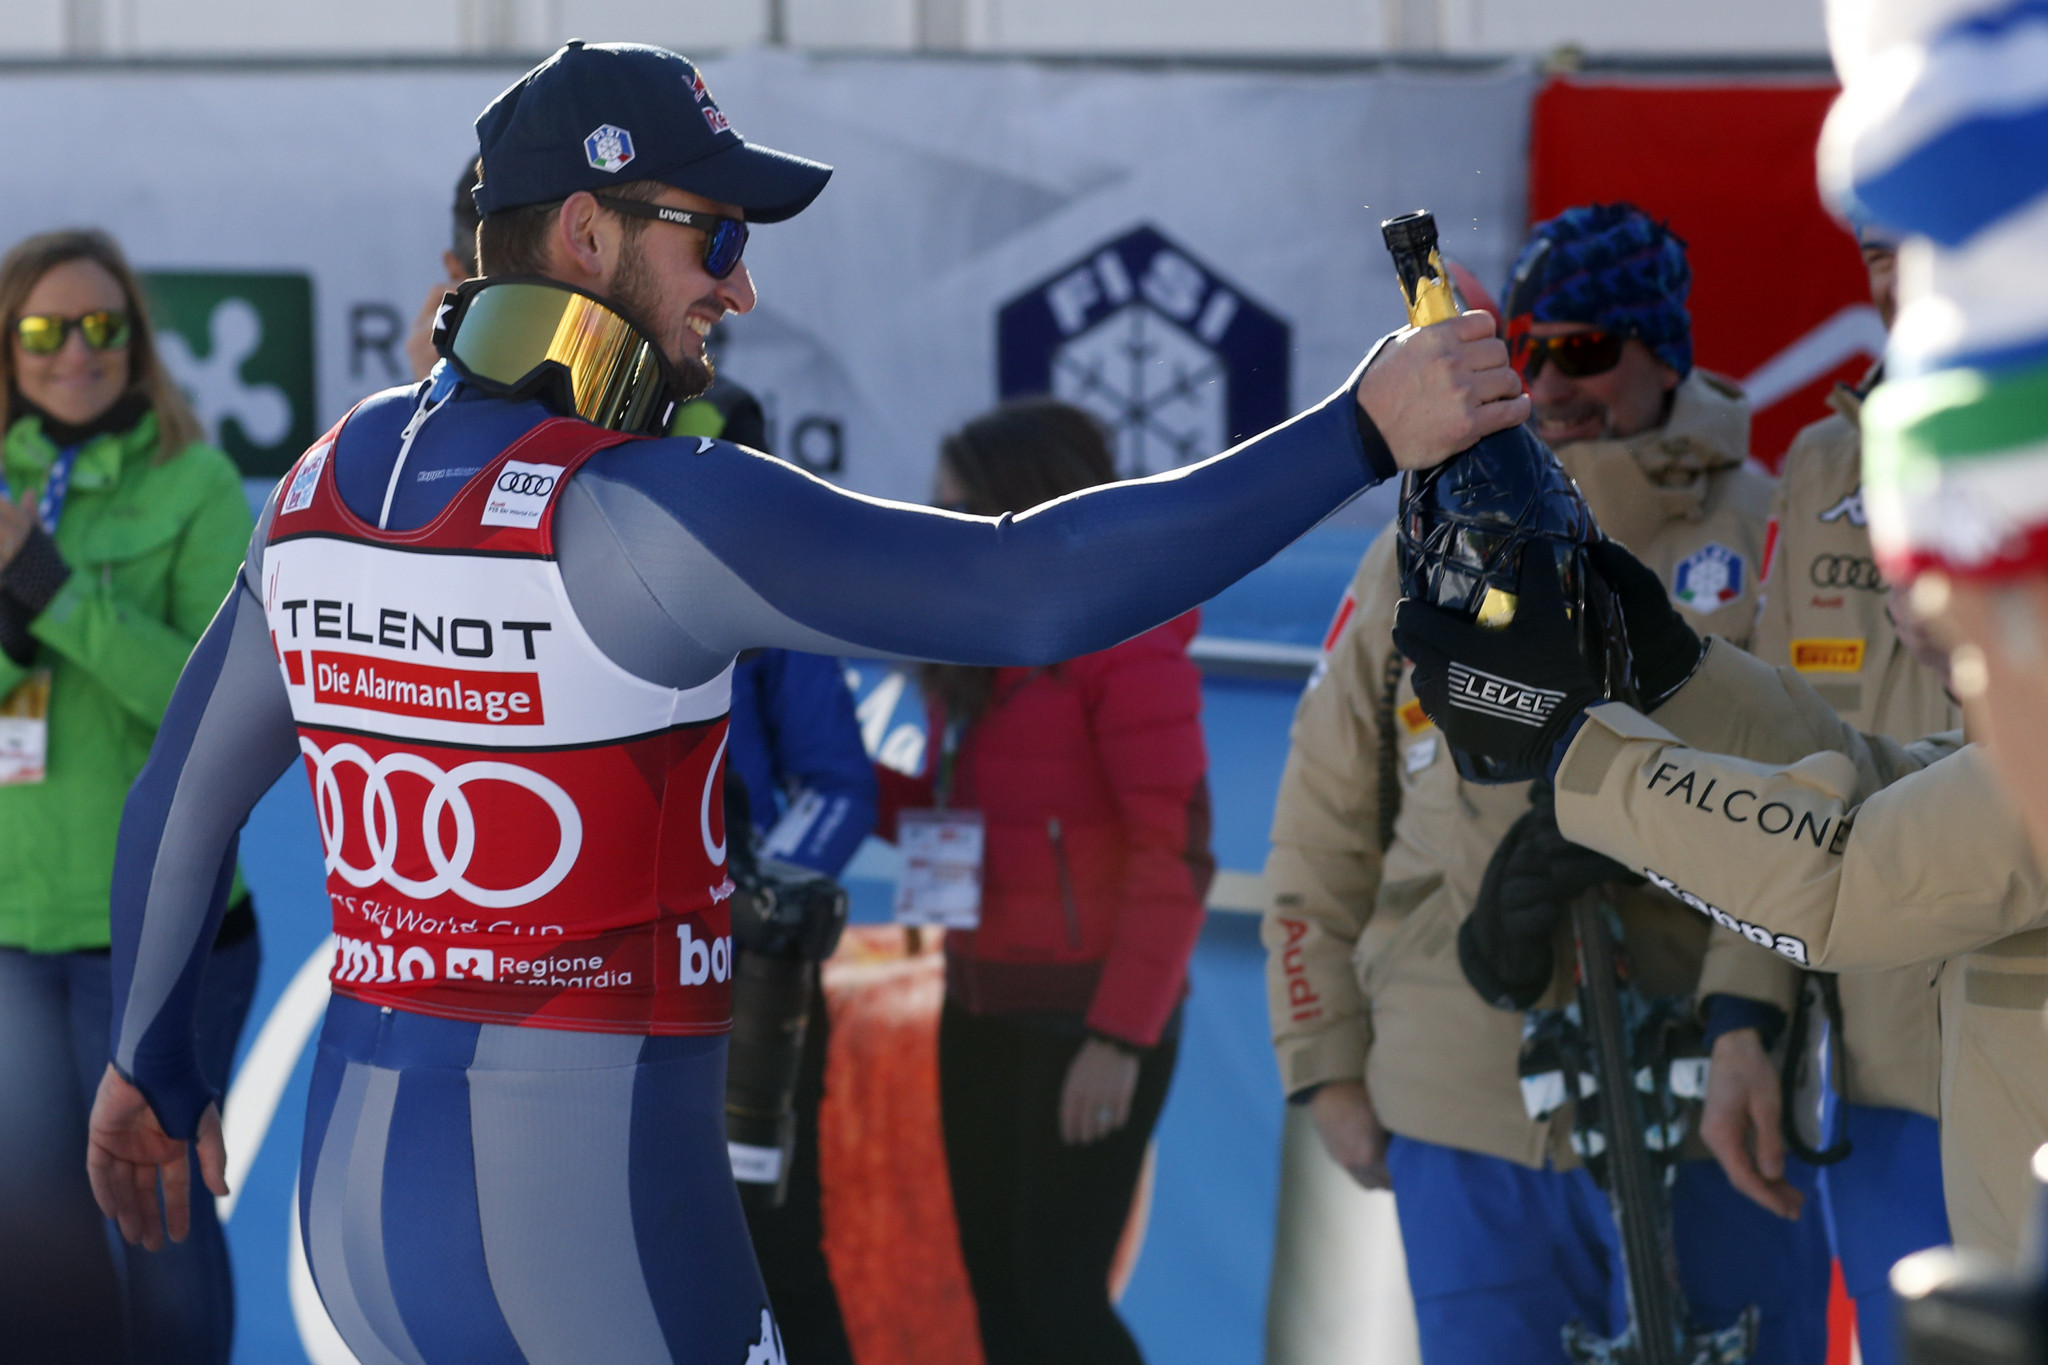 Paris secures second straight downhill win at FIS Alpine Skiing World Cup